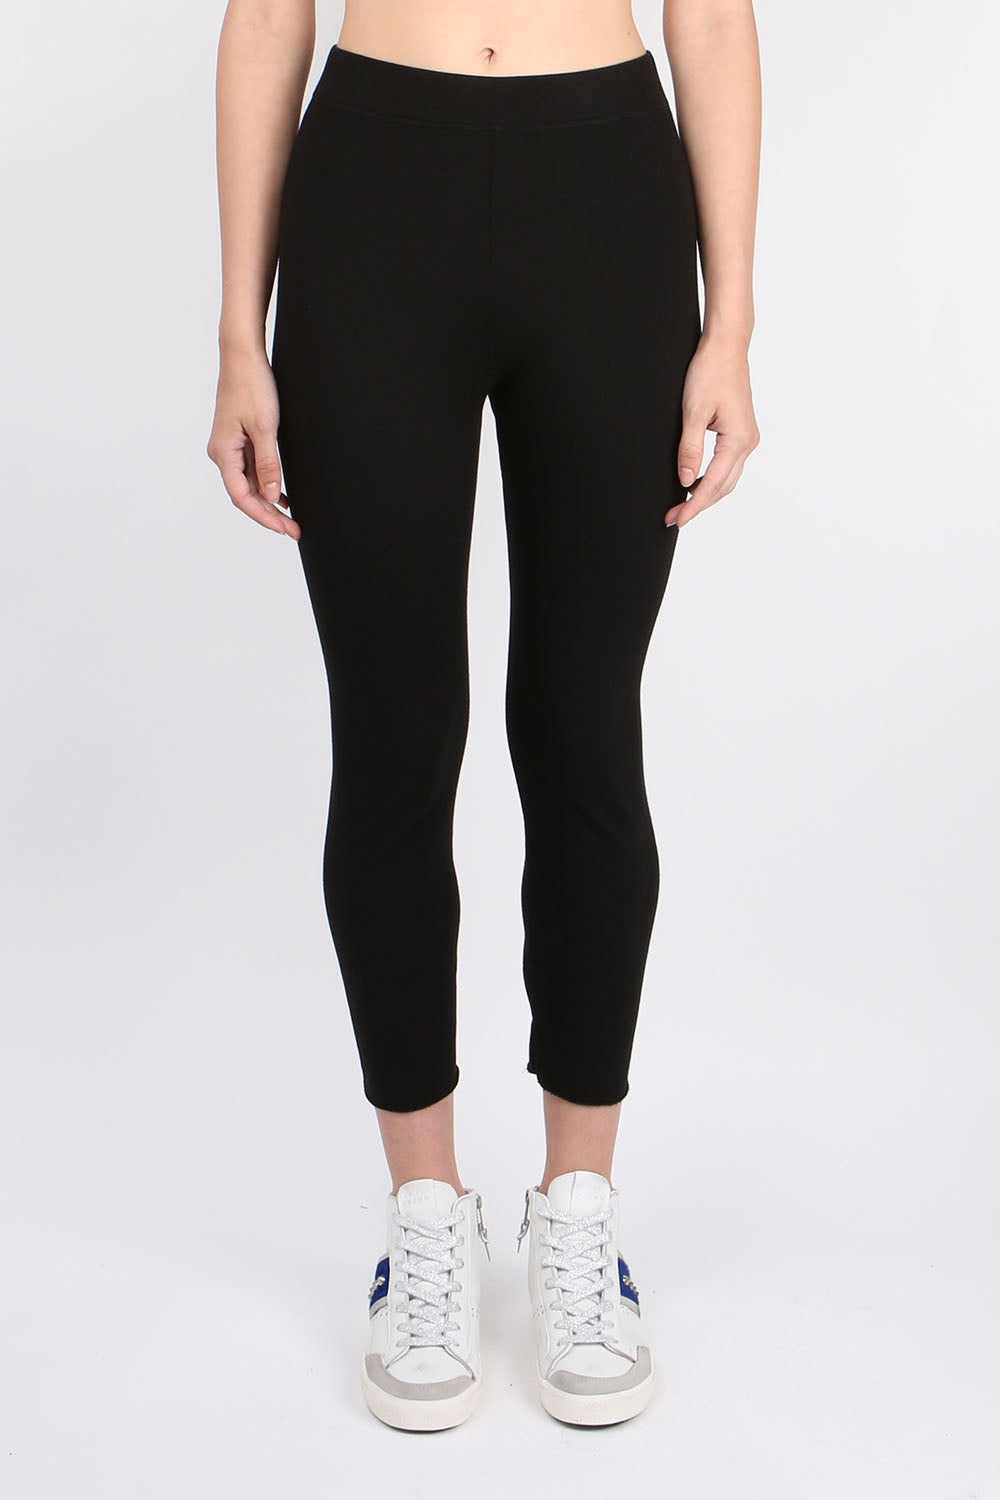 Tee Lab by Frank & Eileen Legging Blackout